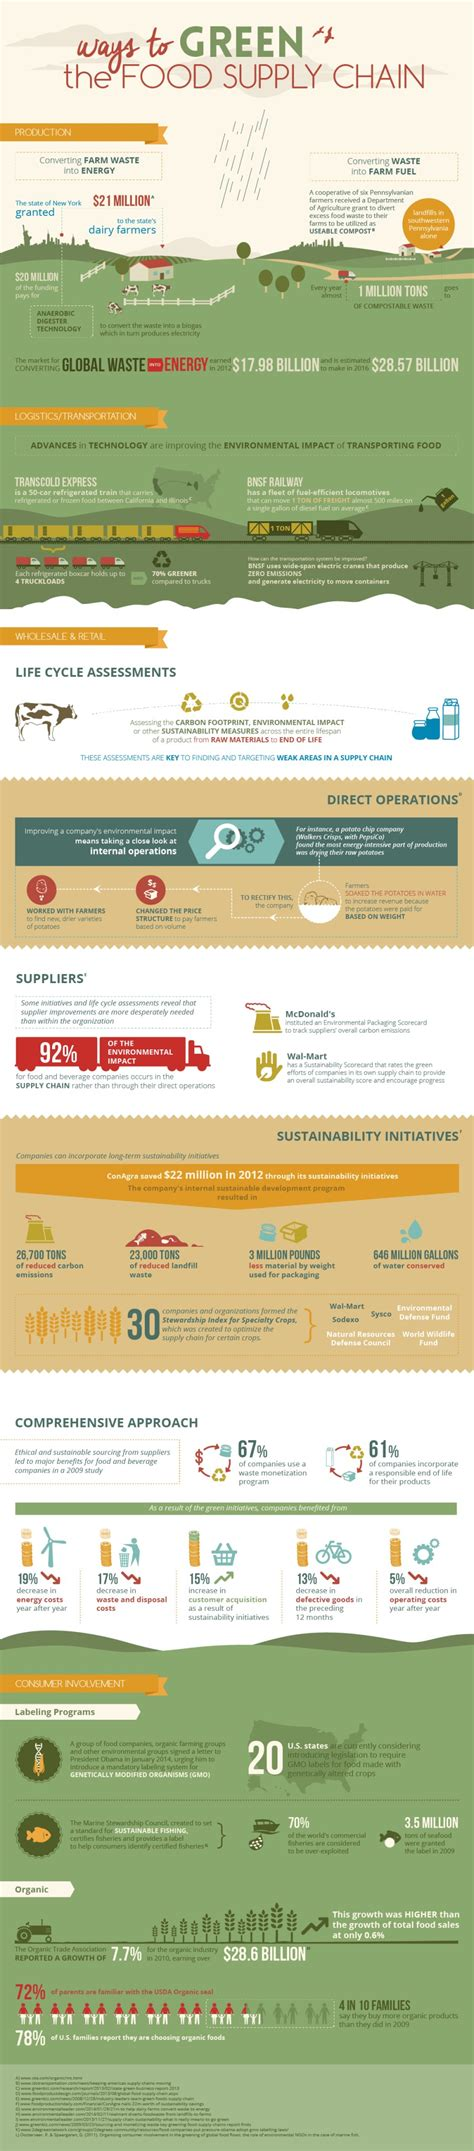 Http Www Mbacentral Org Top Sustainability Mba Degree Programs by Greening The Food Supply Chain Infographic